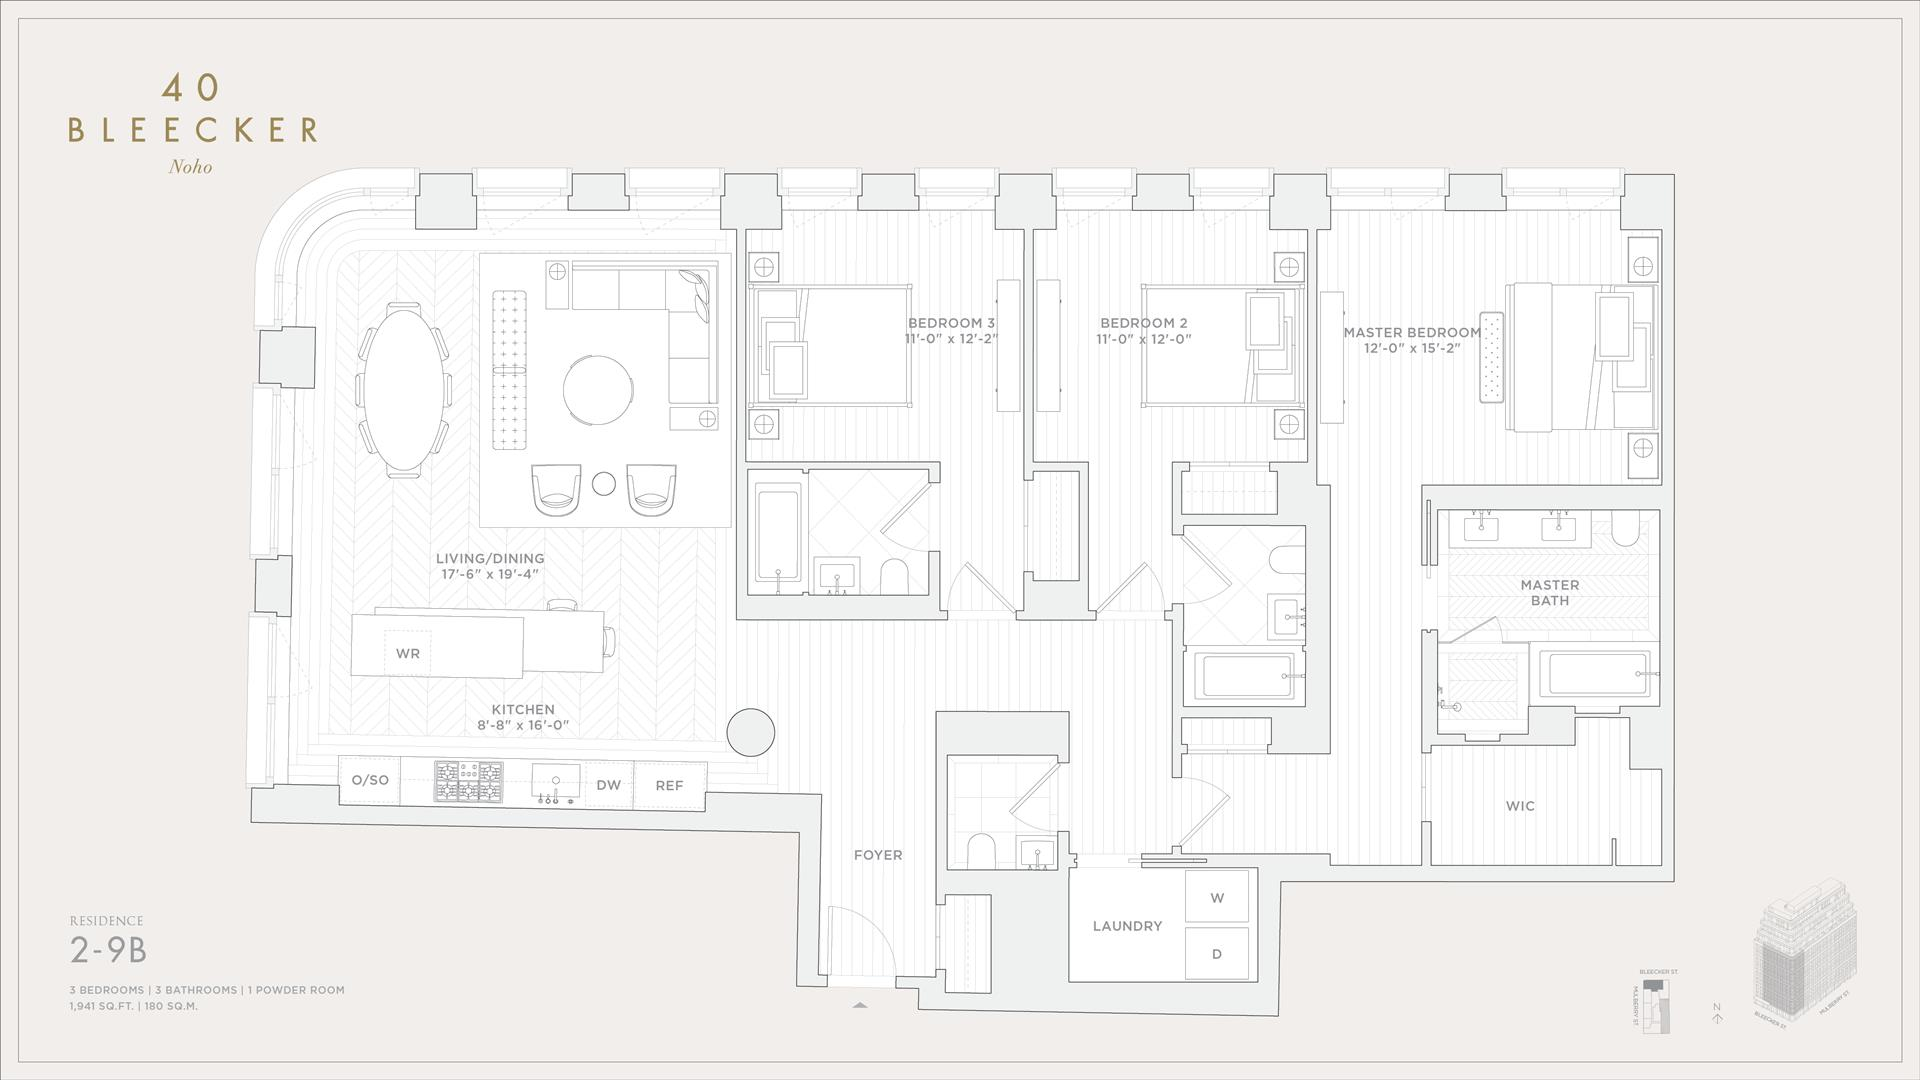 Floor plan of 40 Bleecker Street, 9B - NoHo, New York